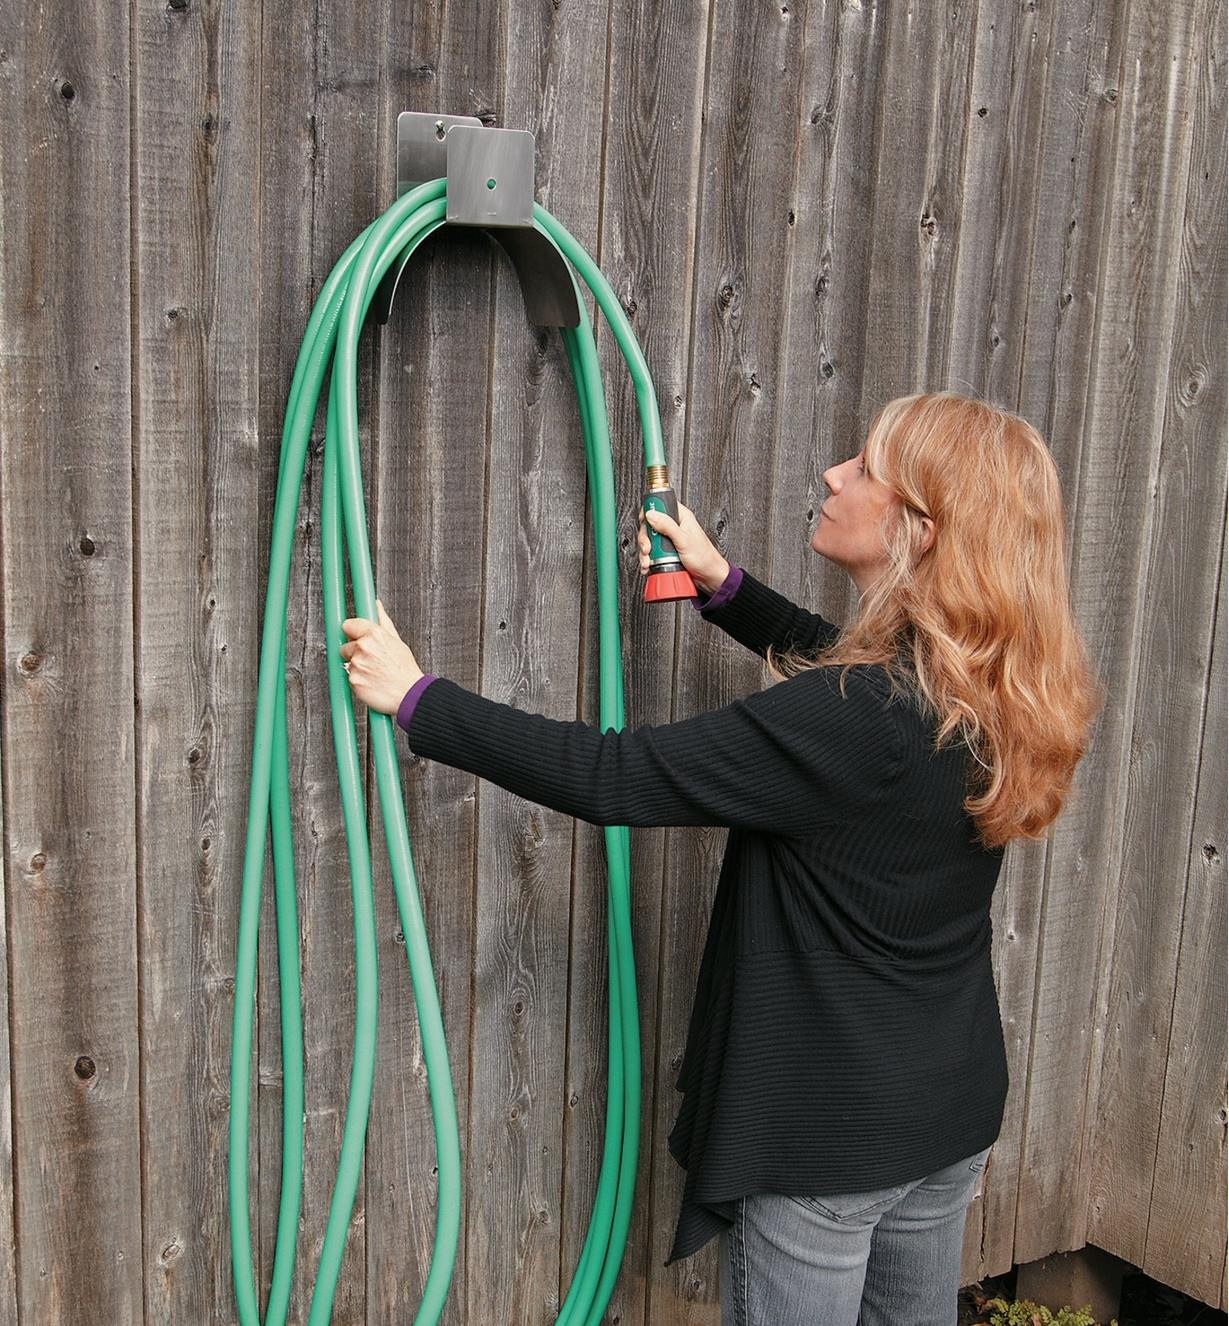 A woman loops a hose over the Hose Hanger